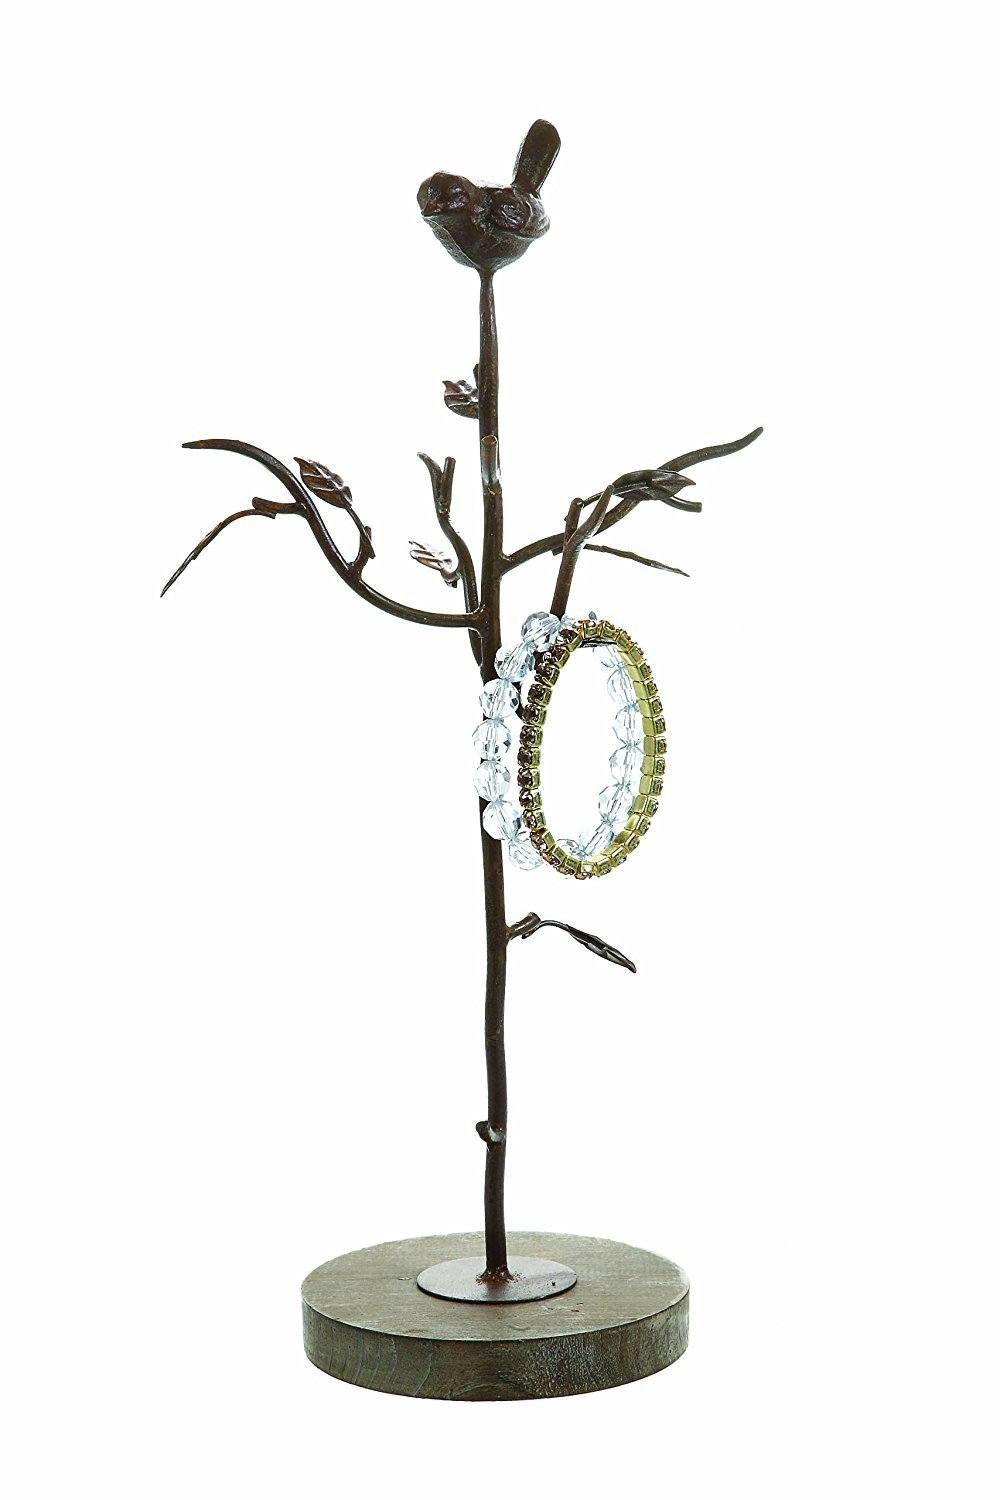 Creative Co-op Aviary Decorative Metal Jewelry Tree with Bird